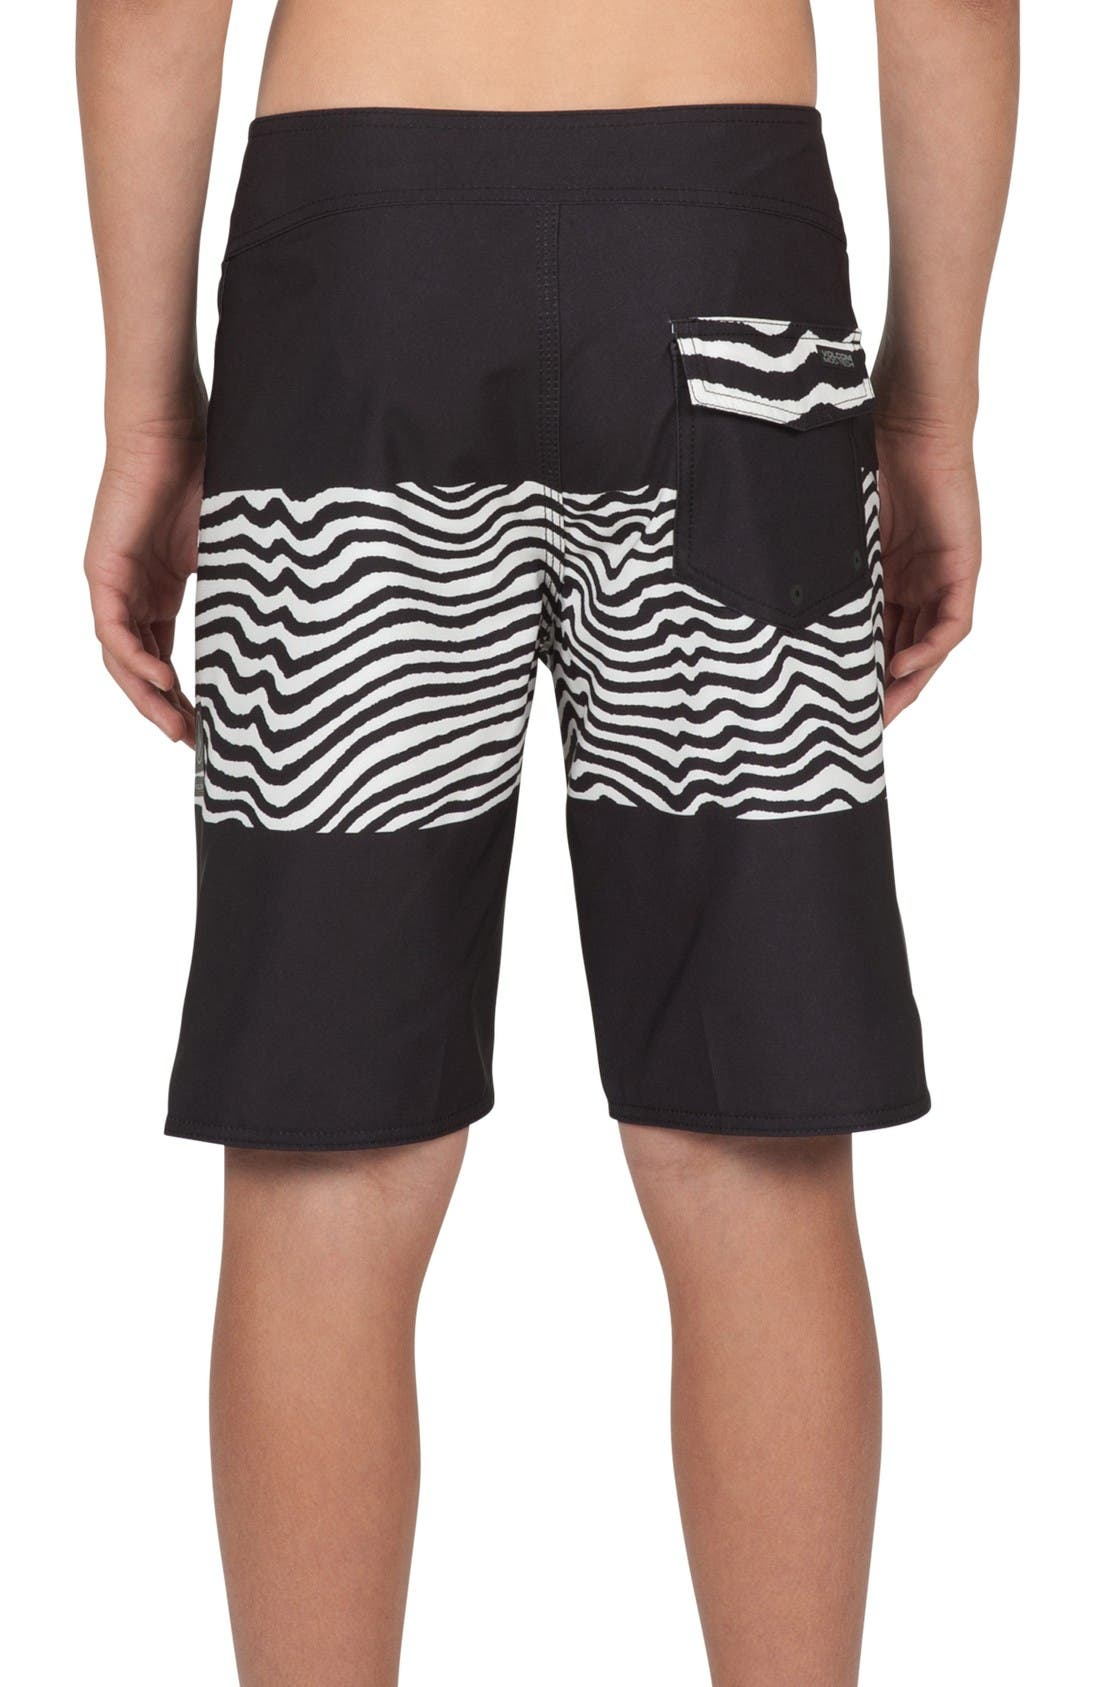 Macaw Mod Board Shorts,                             Alternate thumbnail 2, color,                             Black/ White